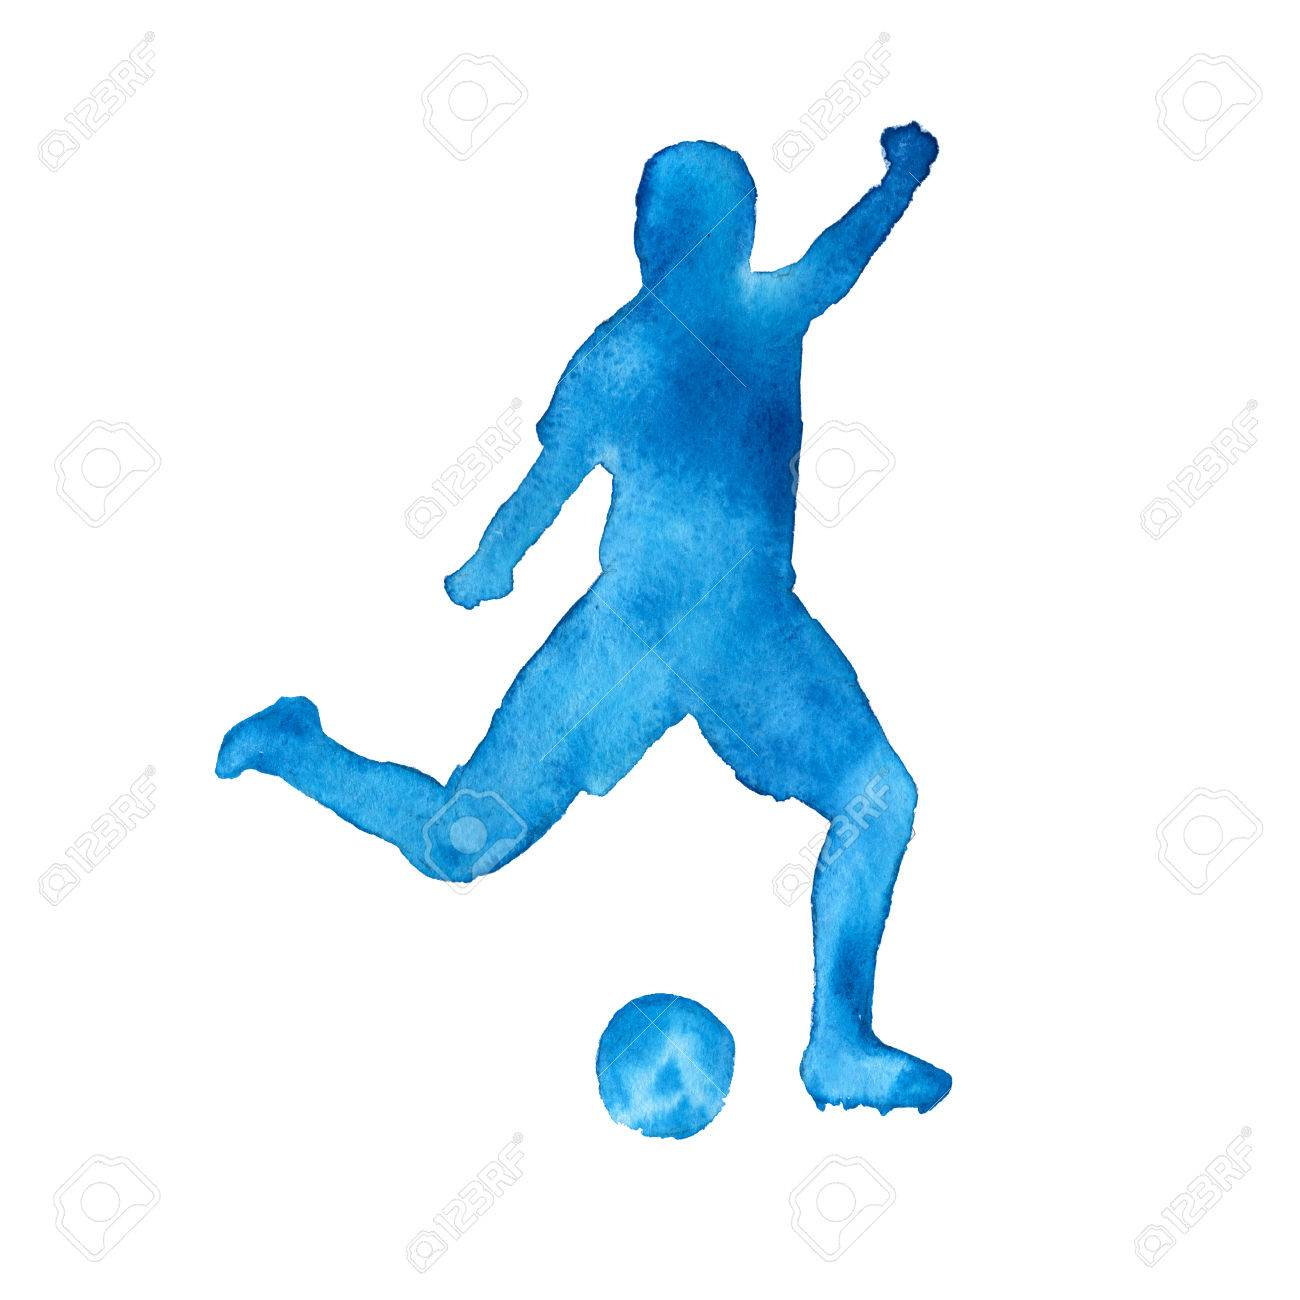 1300x1300 Silhouette Of A Man Playing Football. Footballer. Isolated